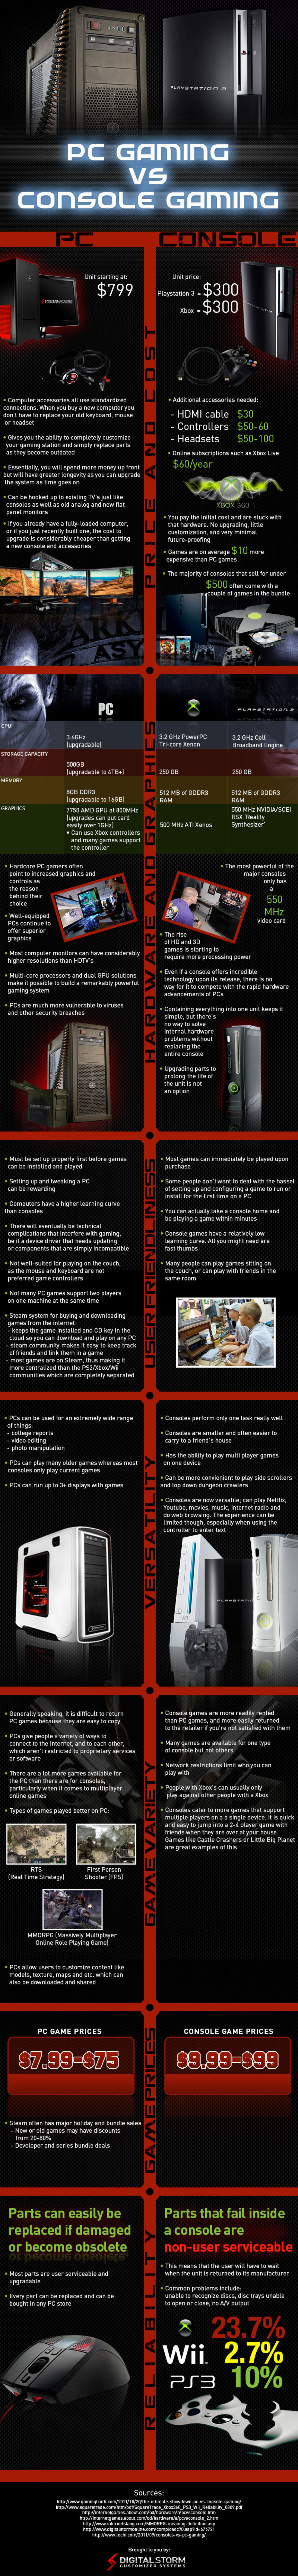 PC Gaming vs Console Gaming? Which is Superior? Infographic